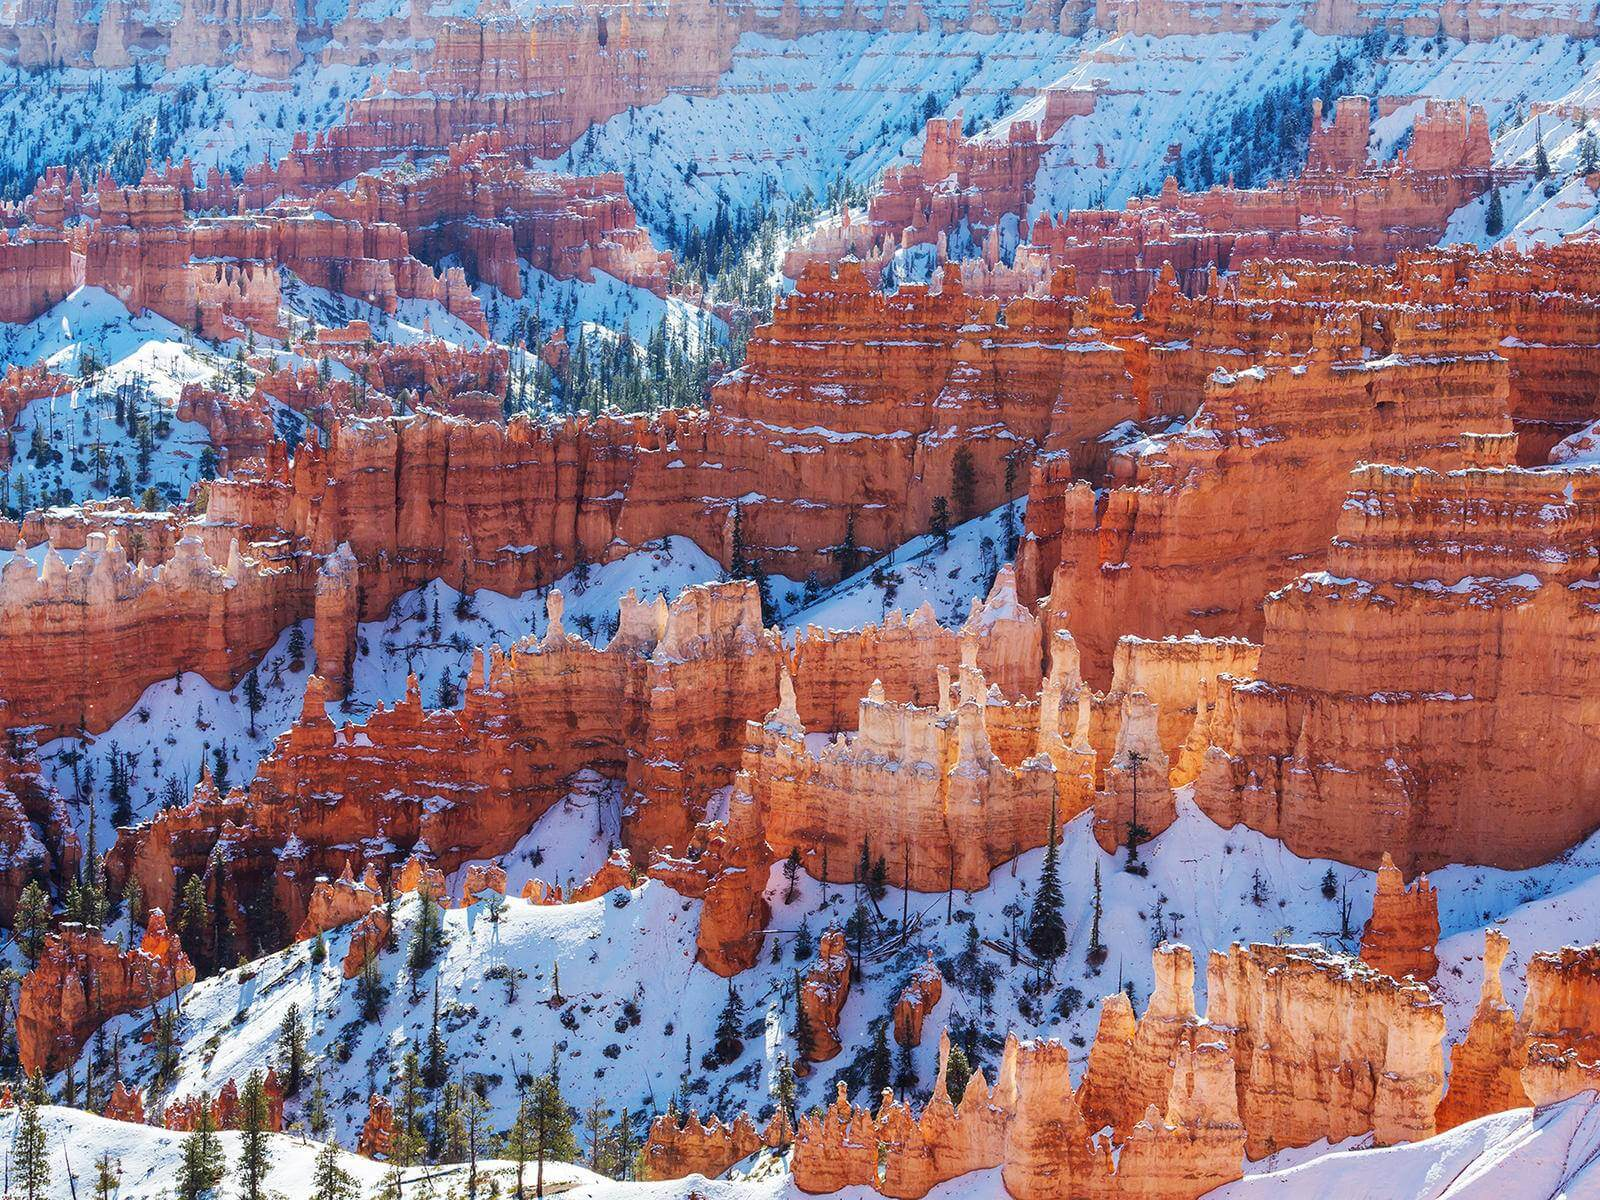 Bryce Canyon rock formations covered in snow